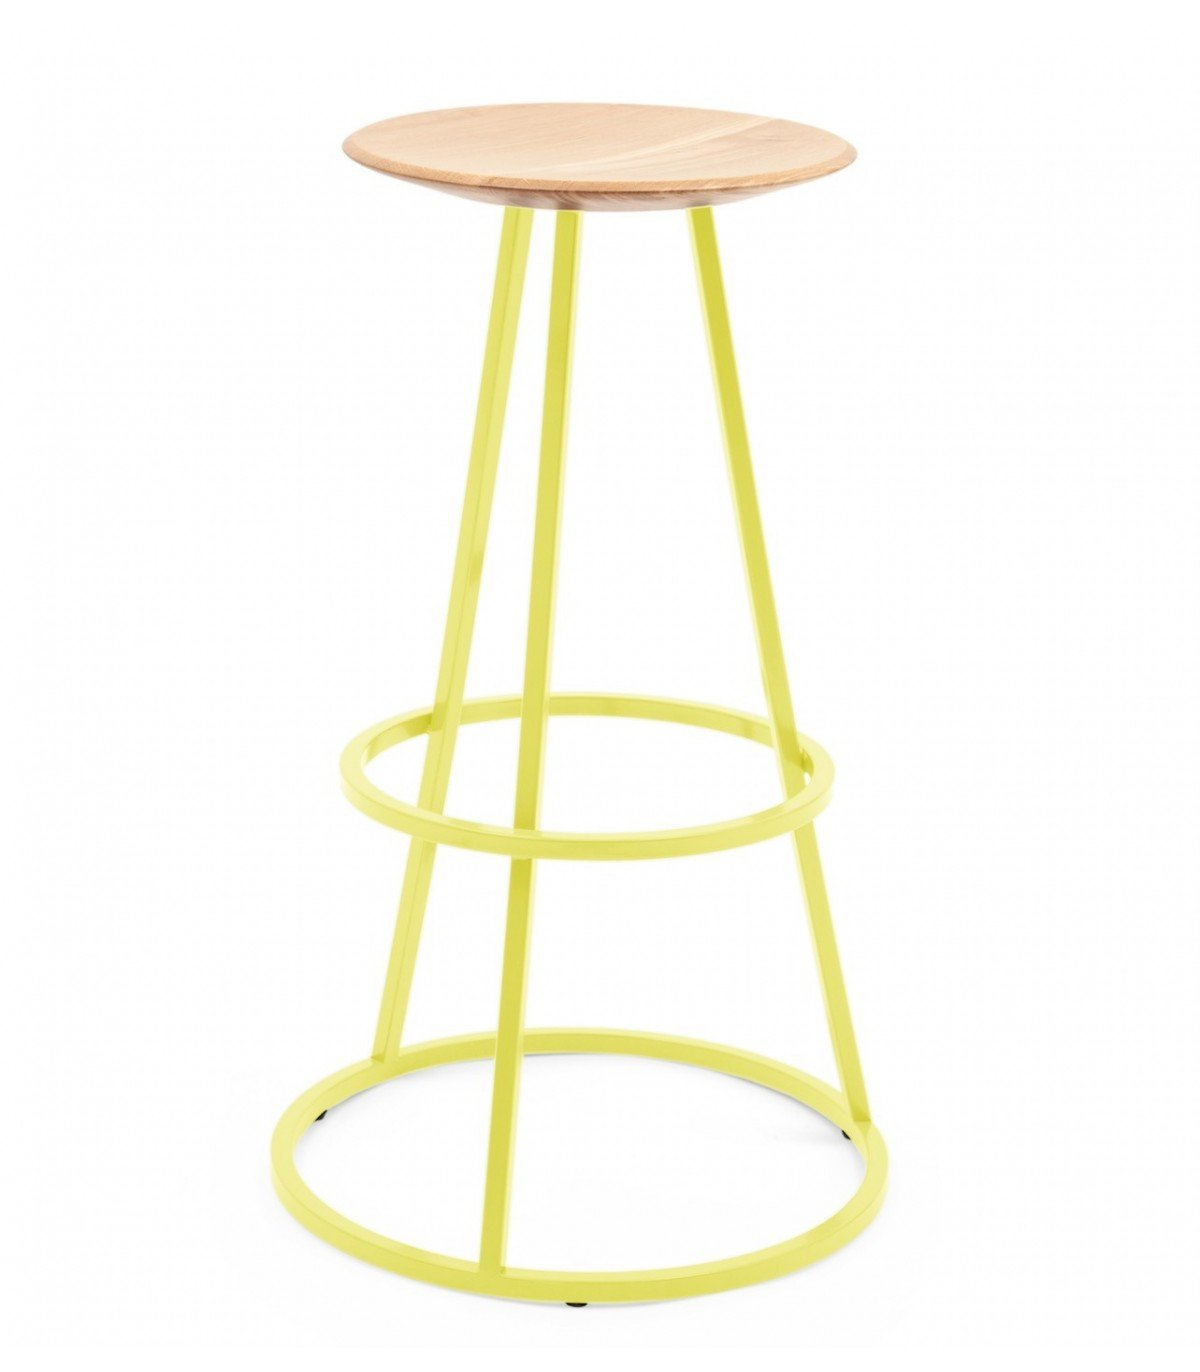 set of 2 yellow tolix style metal bar stools in glossy powde